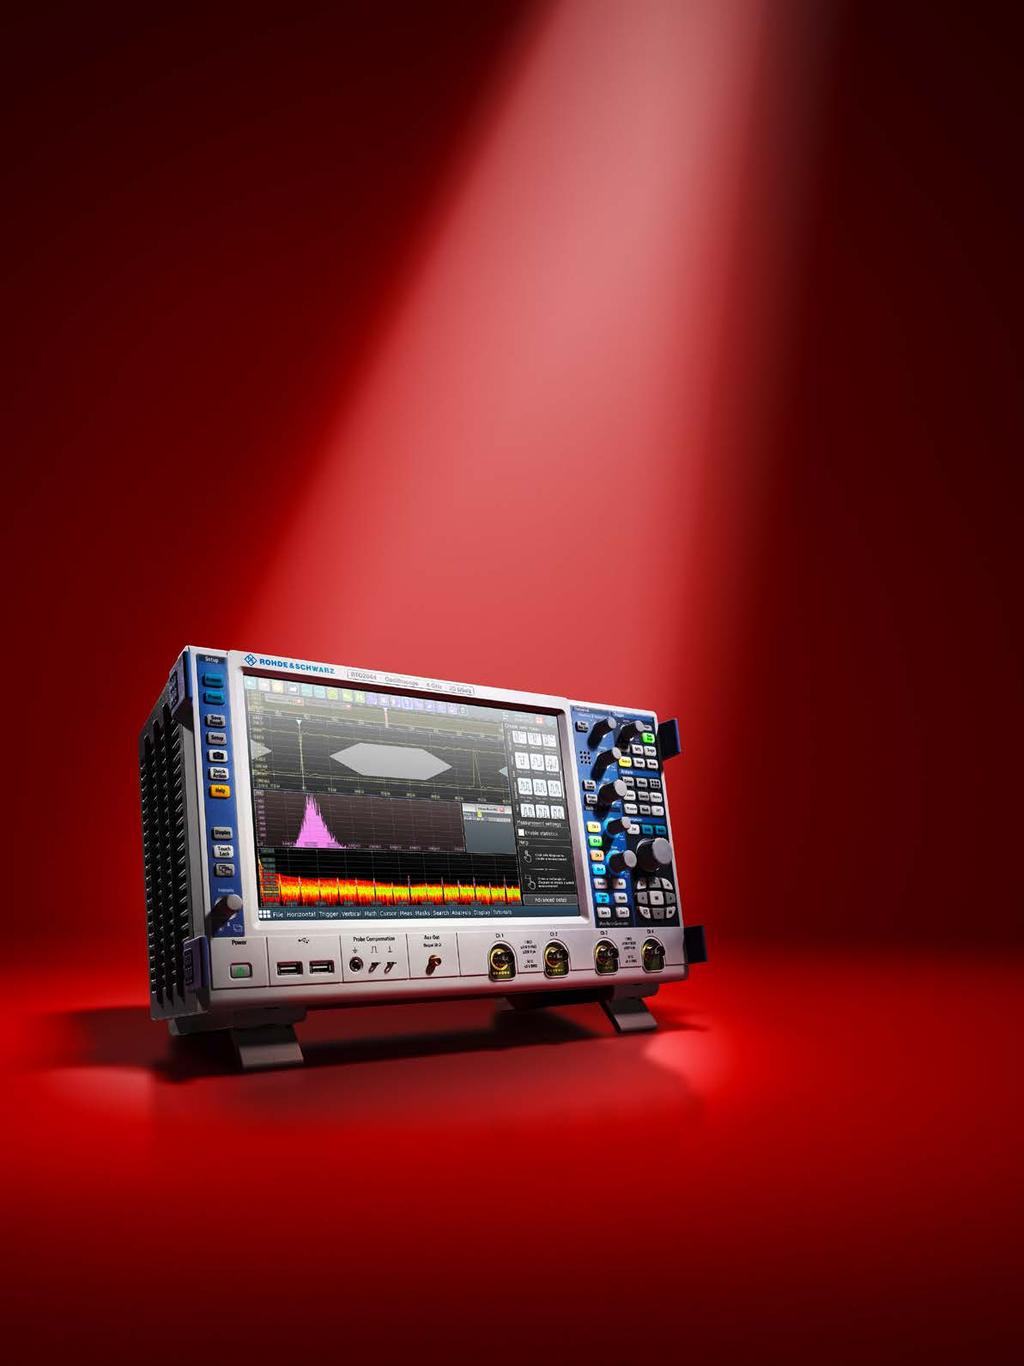 Catalog Test Measurement Nrp18sn With Is For Sale Professional 200khz Digital Benchtop Lcr Bridge Meter Oscilloscopes 32 Rohde